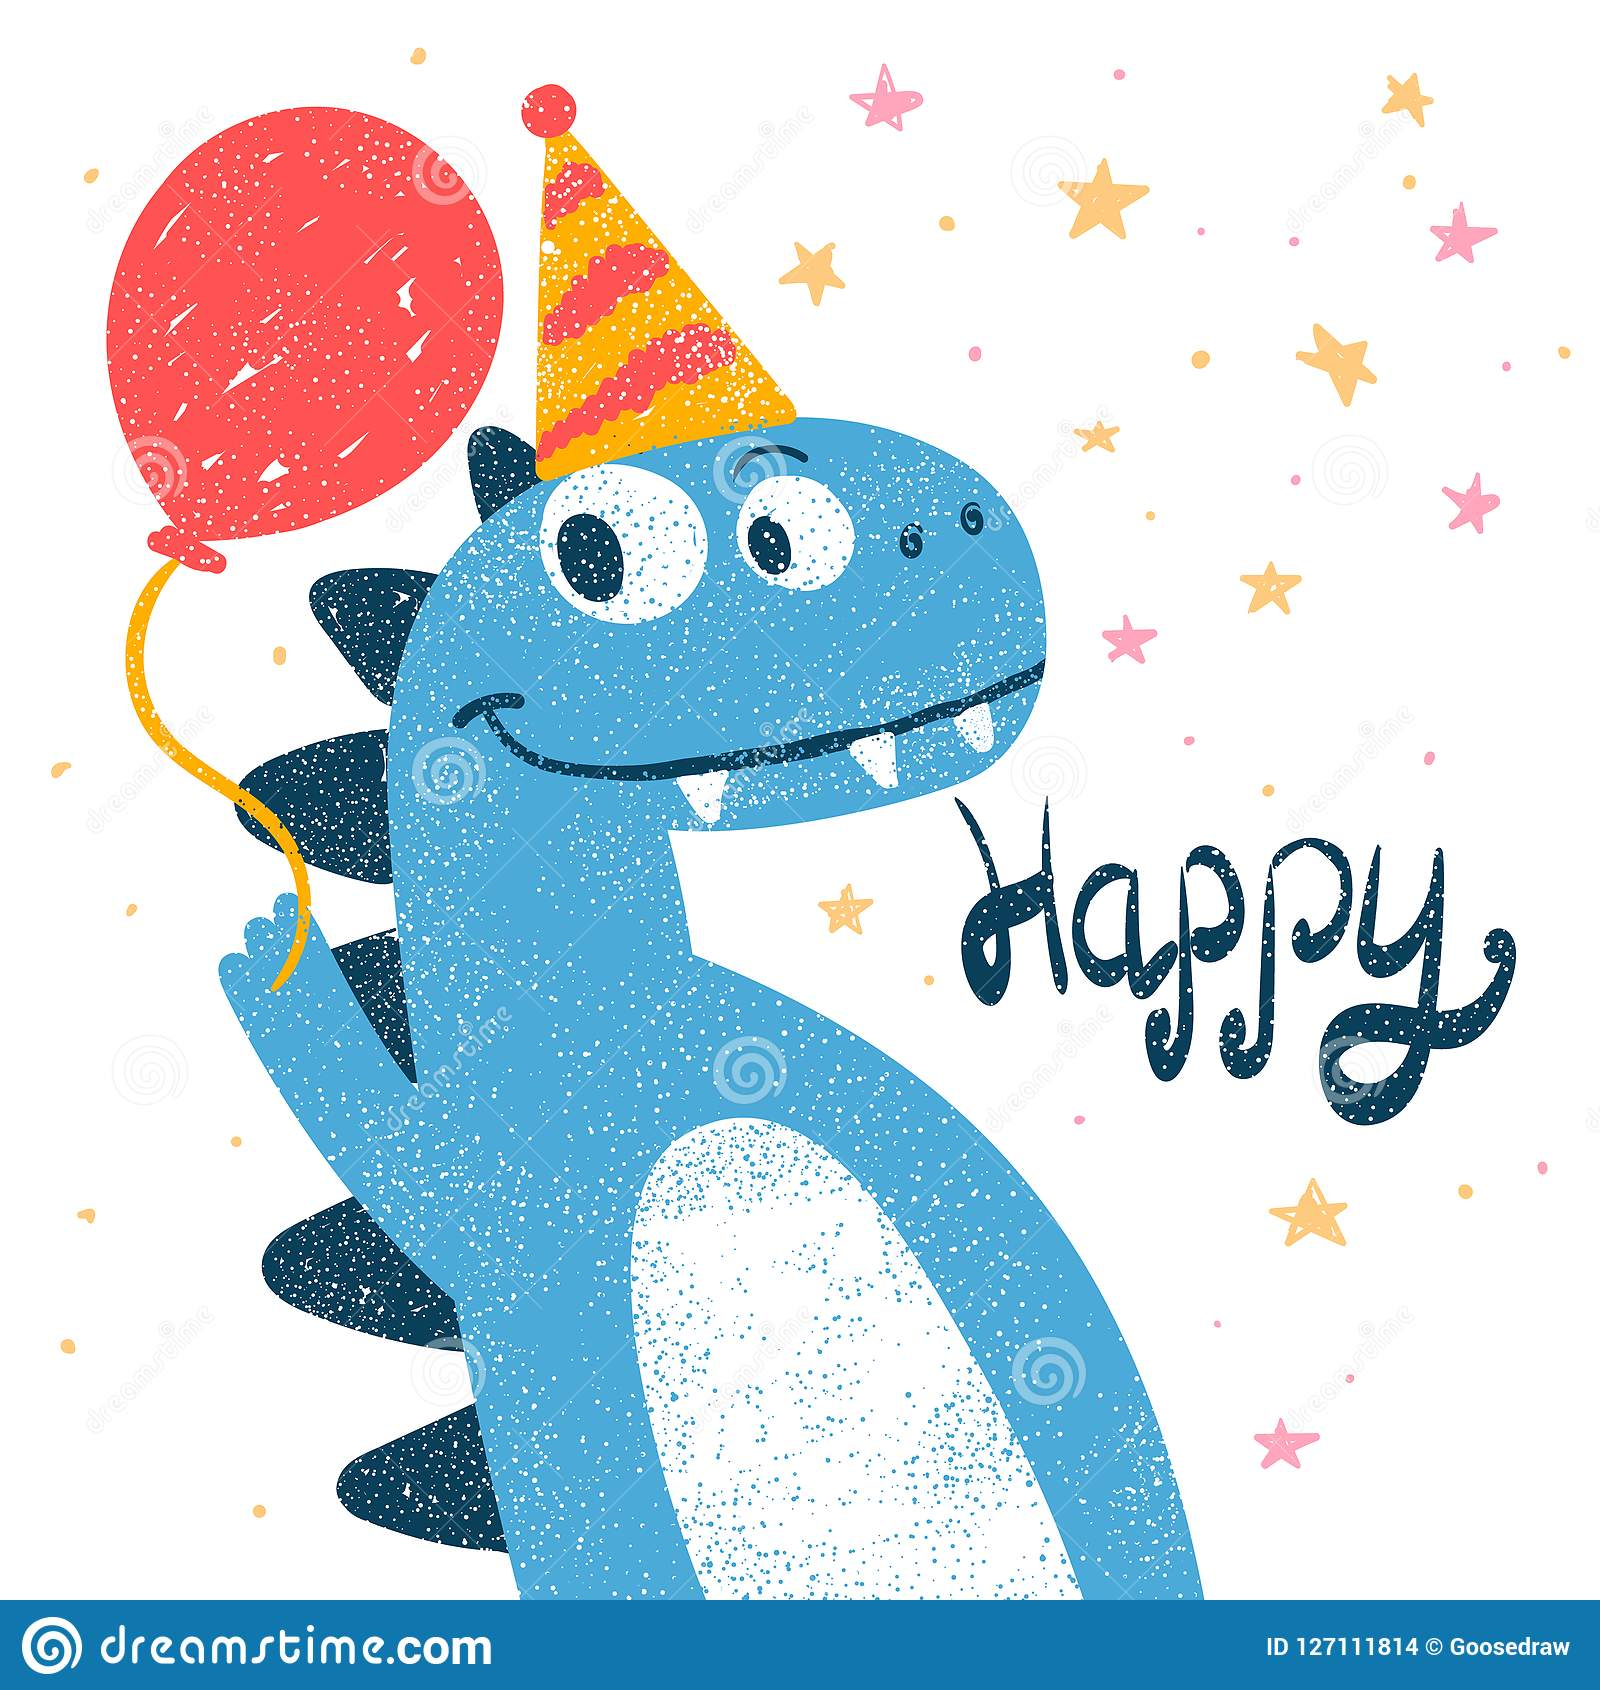 Cute Dino  Dinosaur Illustration For Print T